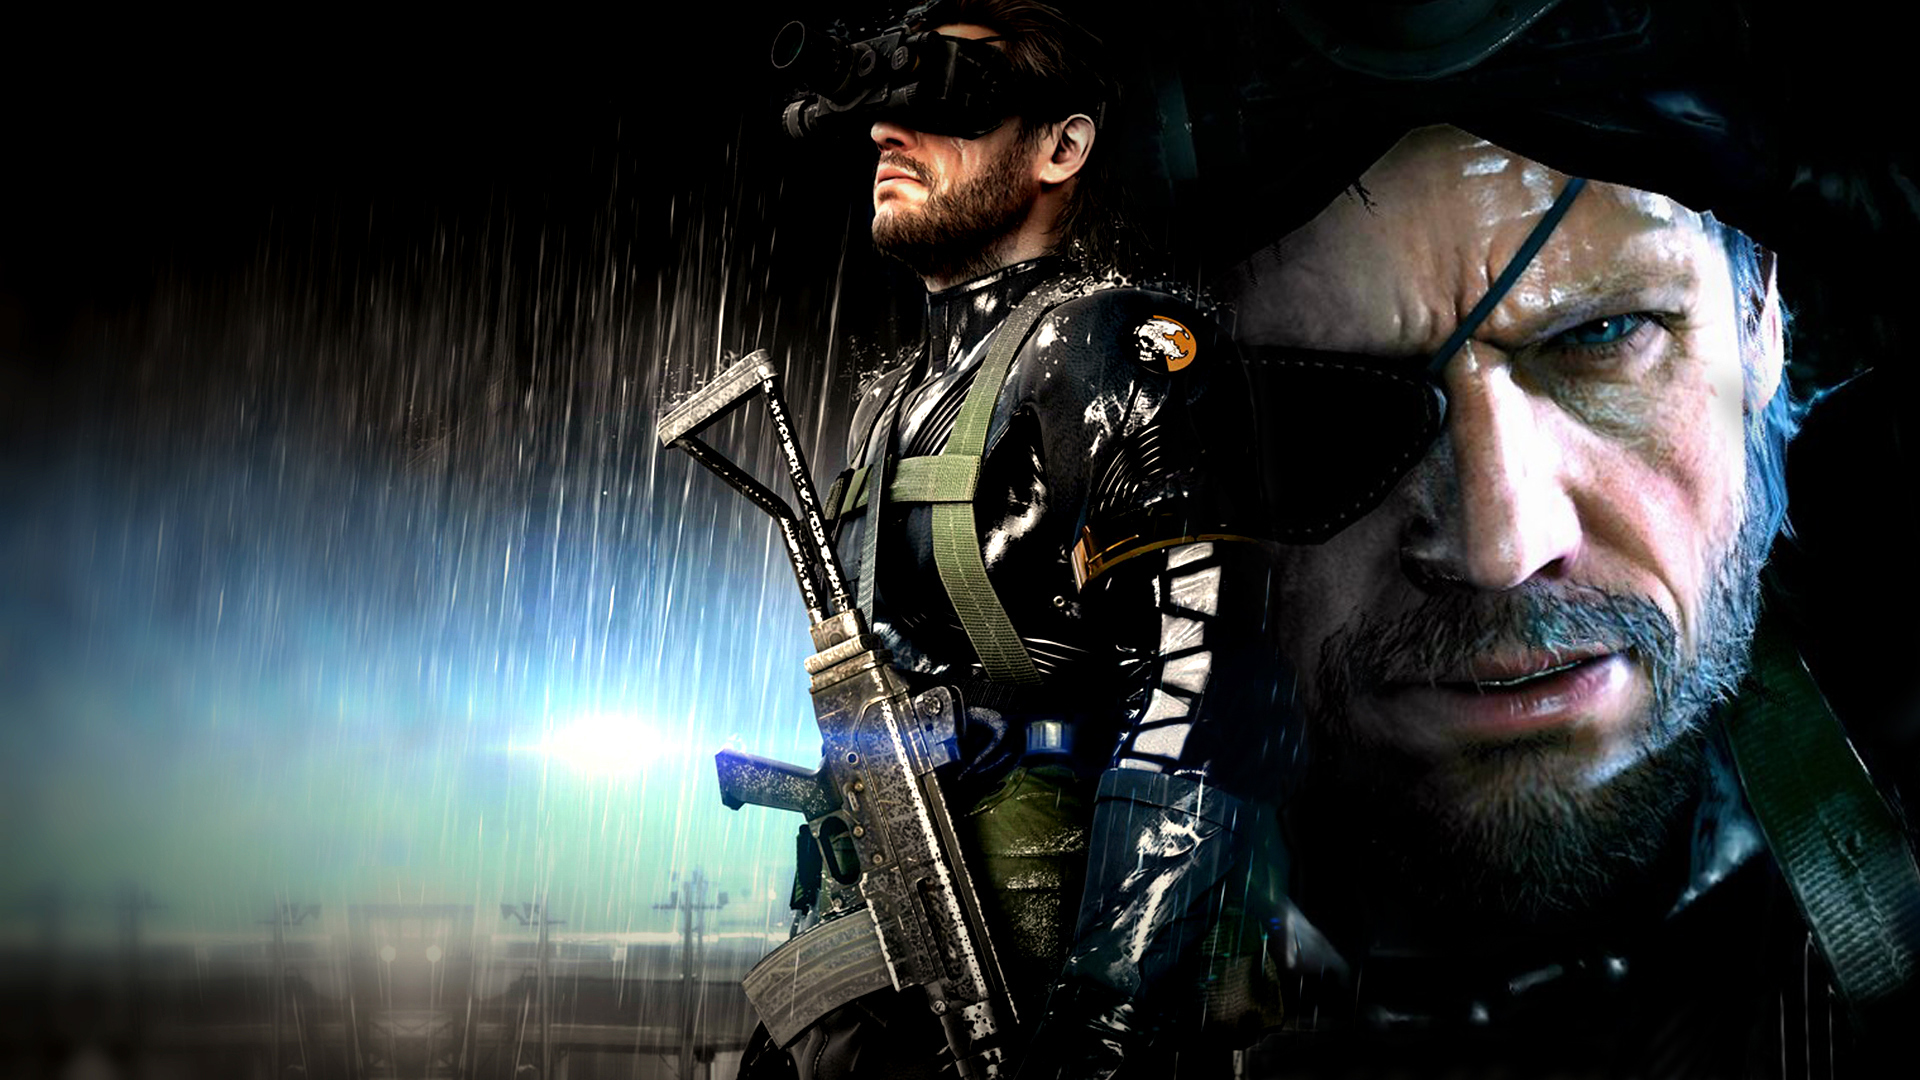 Free Download Metal Gear Solid V Wallpaper 12 1920x1080 For Your